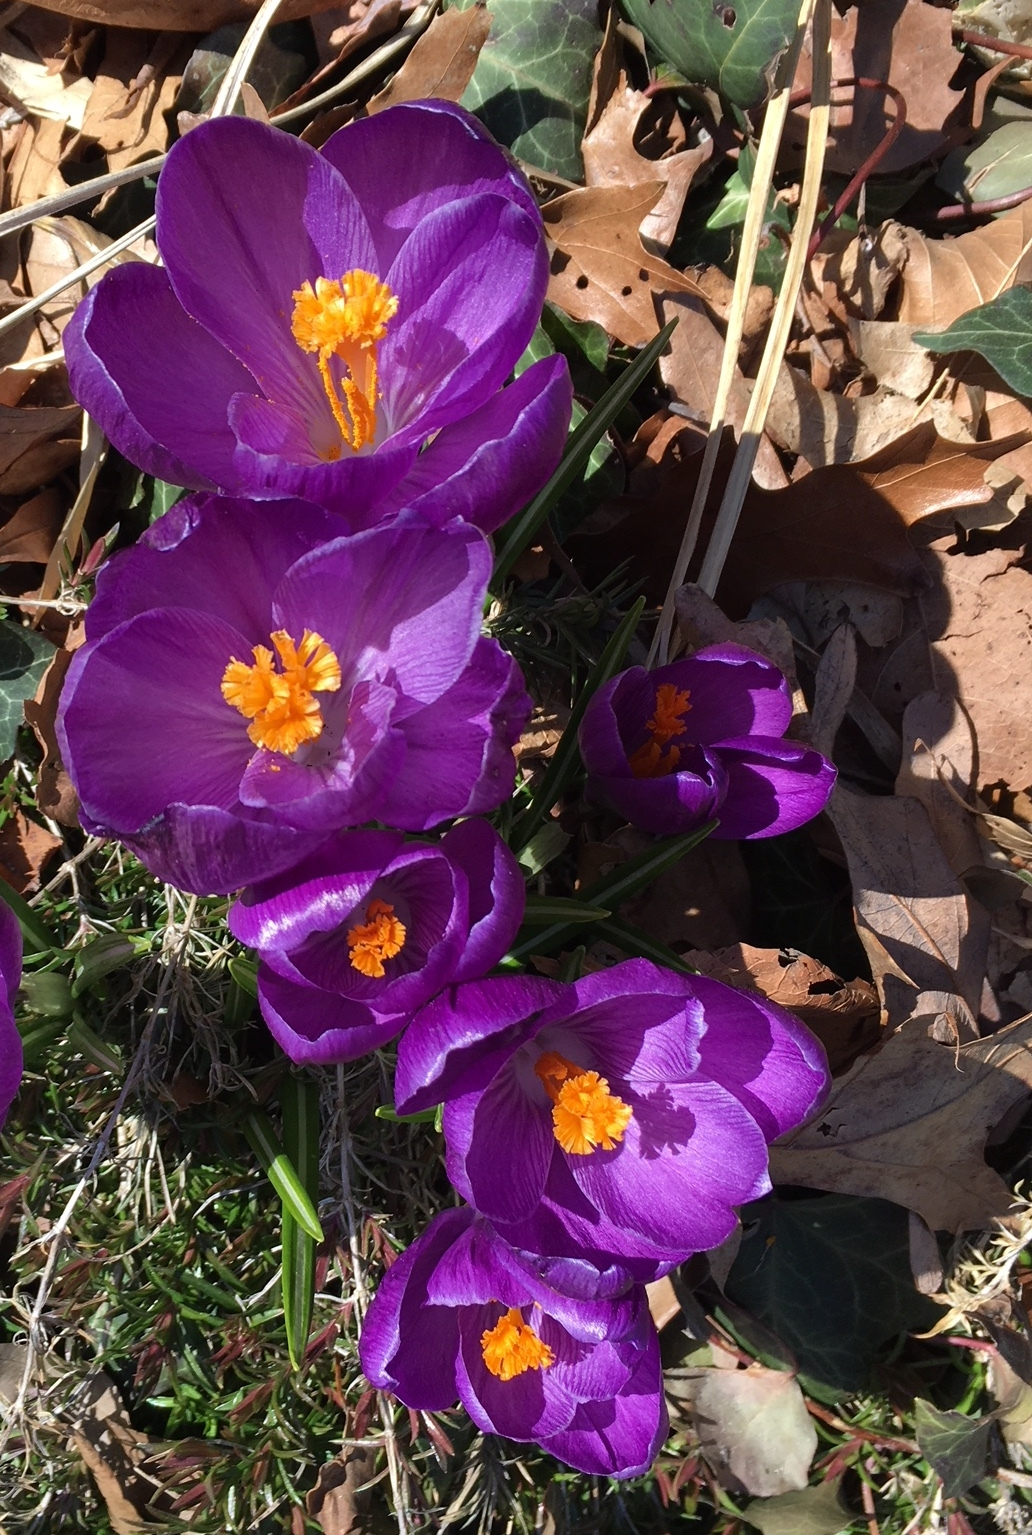 Croci have been popping up, then getting trampled all over the neighbor hood!